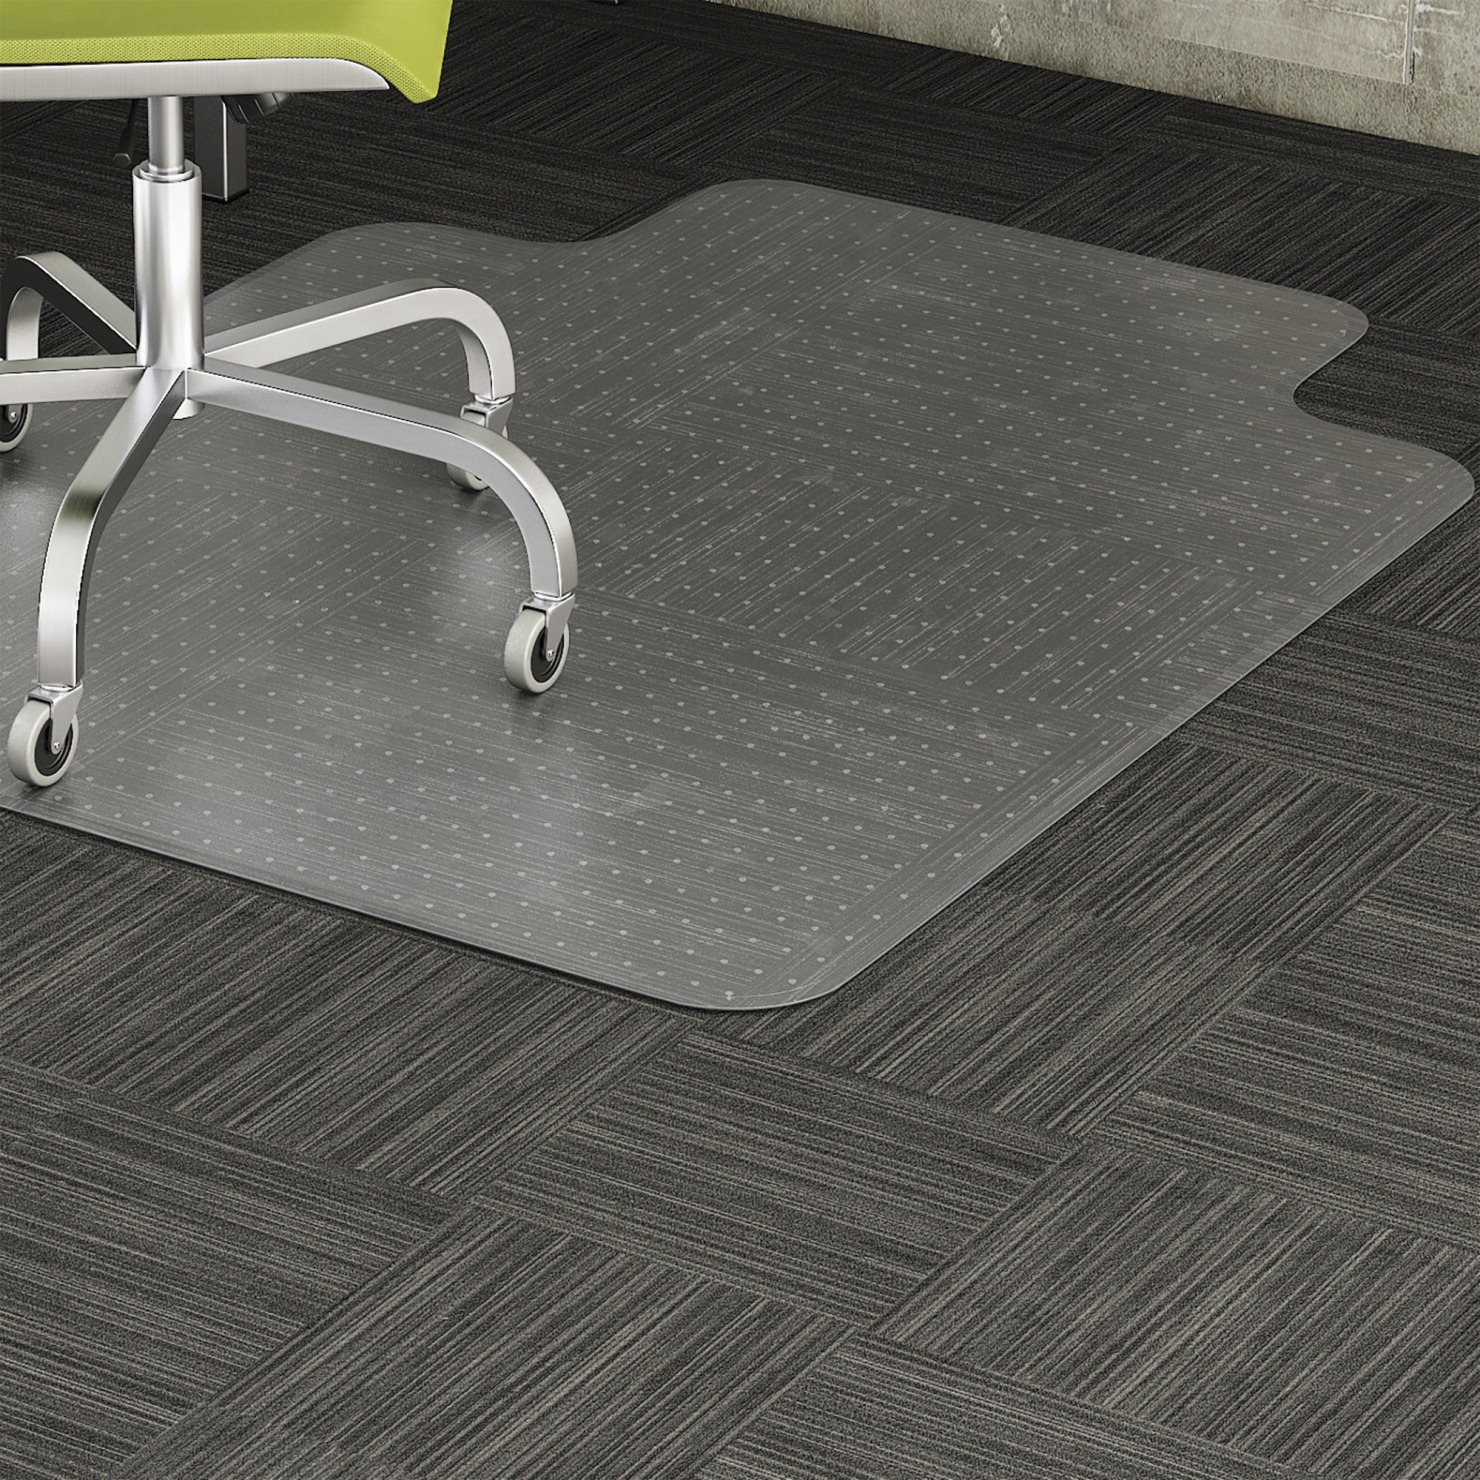 Lorell Low-pile Carpet Chairmat; Wide Lip 25 X 12 In; 45 X 53 In; Clear - 1506078 - Facilities Management Bar Stool Set Table Chair Metal State Logo Chairs Wood Metal Chairs 1506078